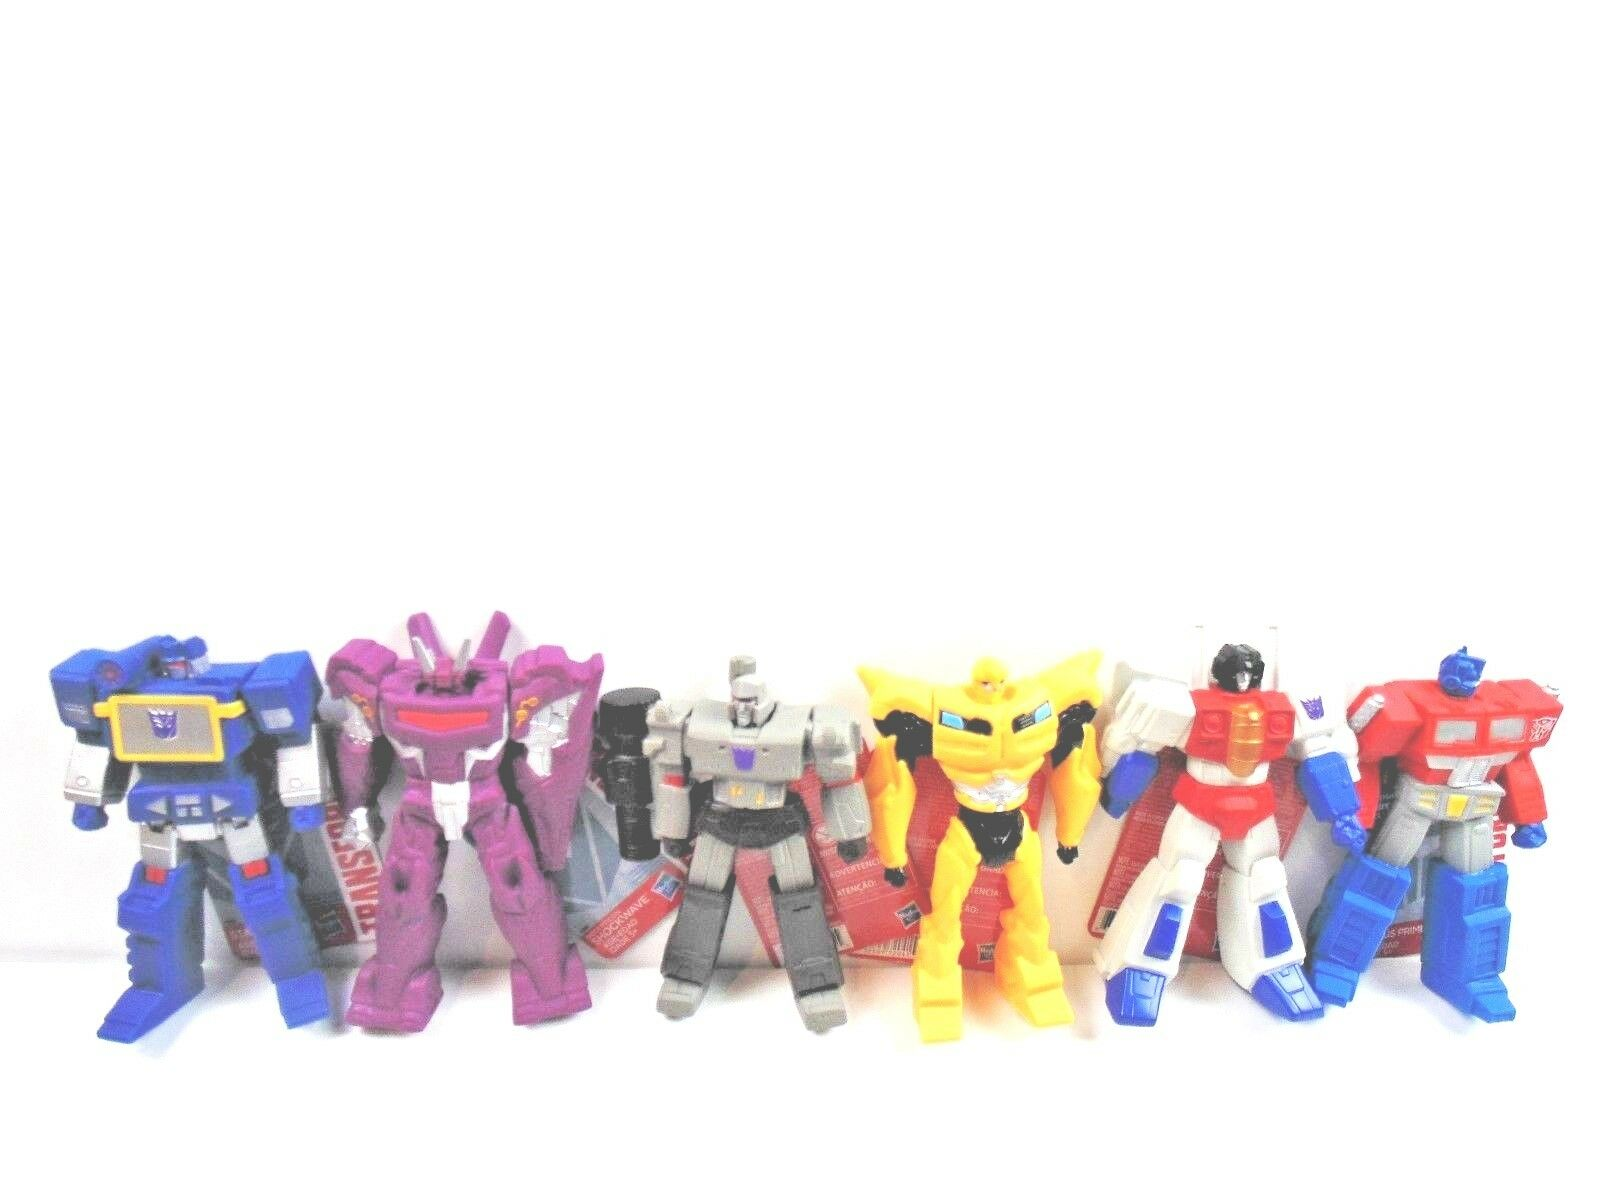 Transformers 6 inch figures PVC Wal Mart Exclusive Set of 6